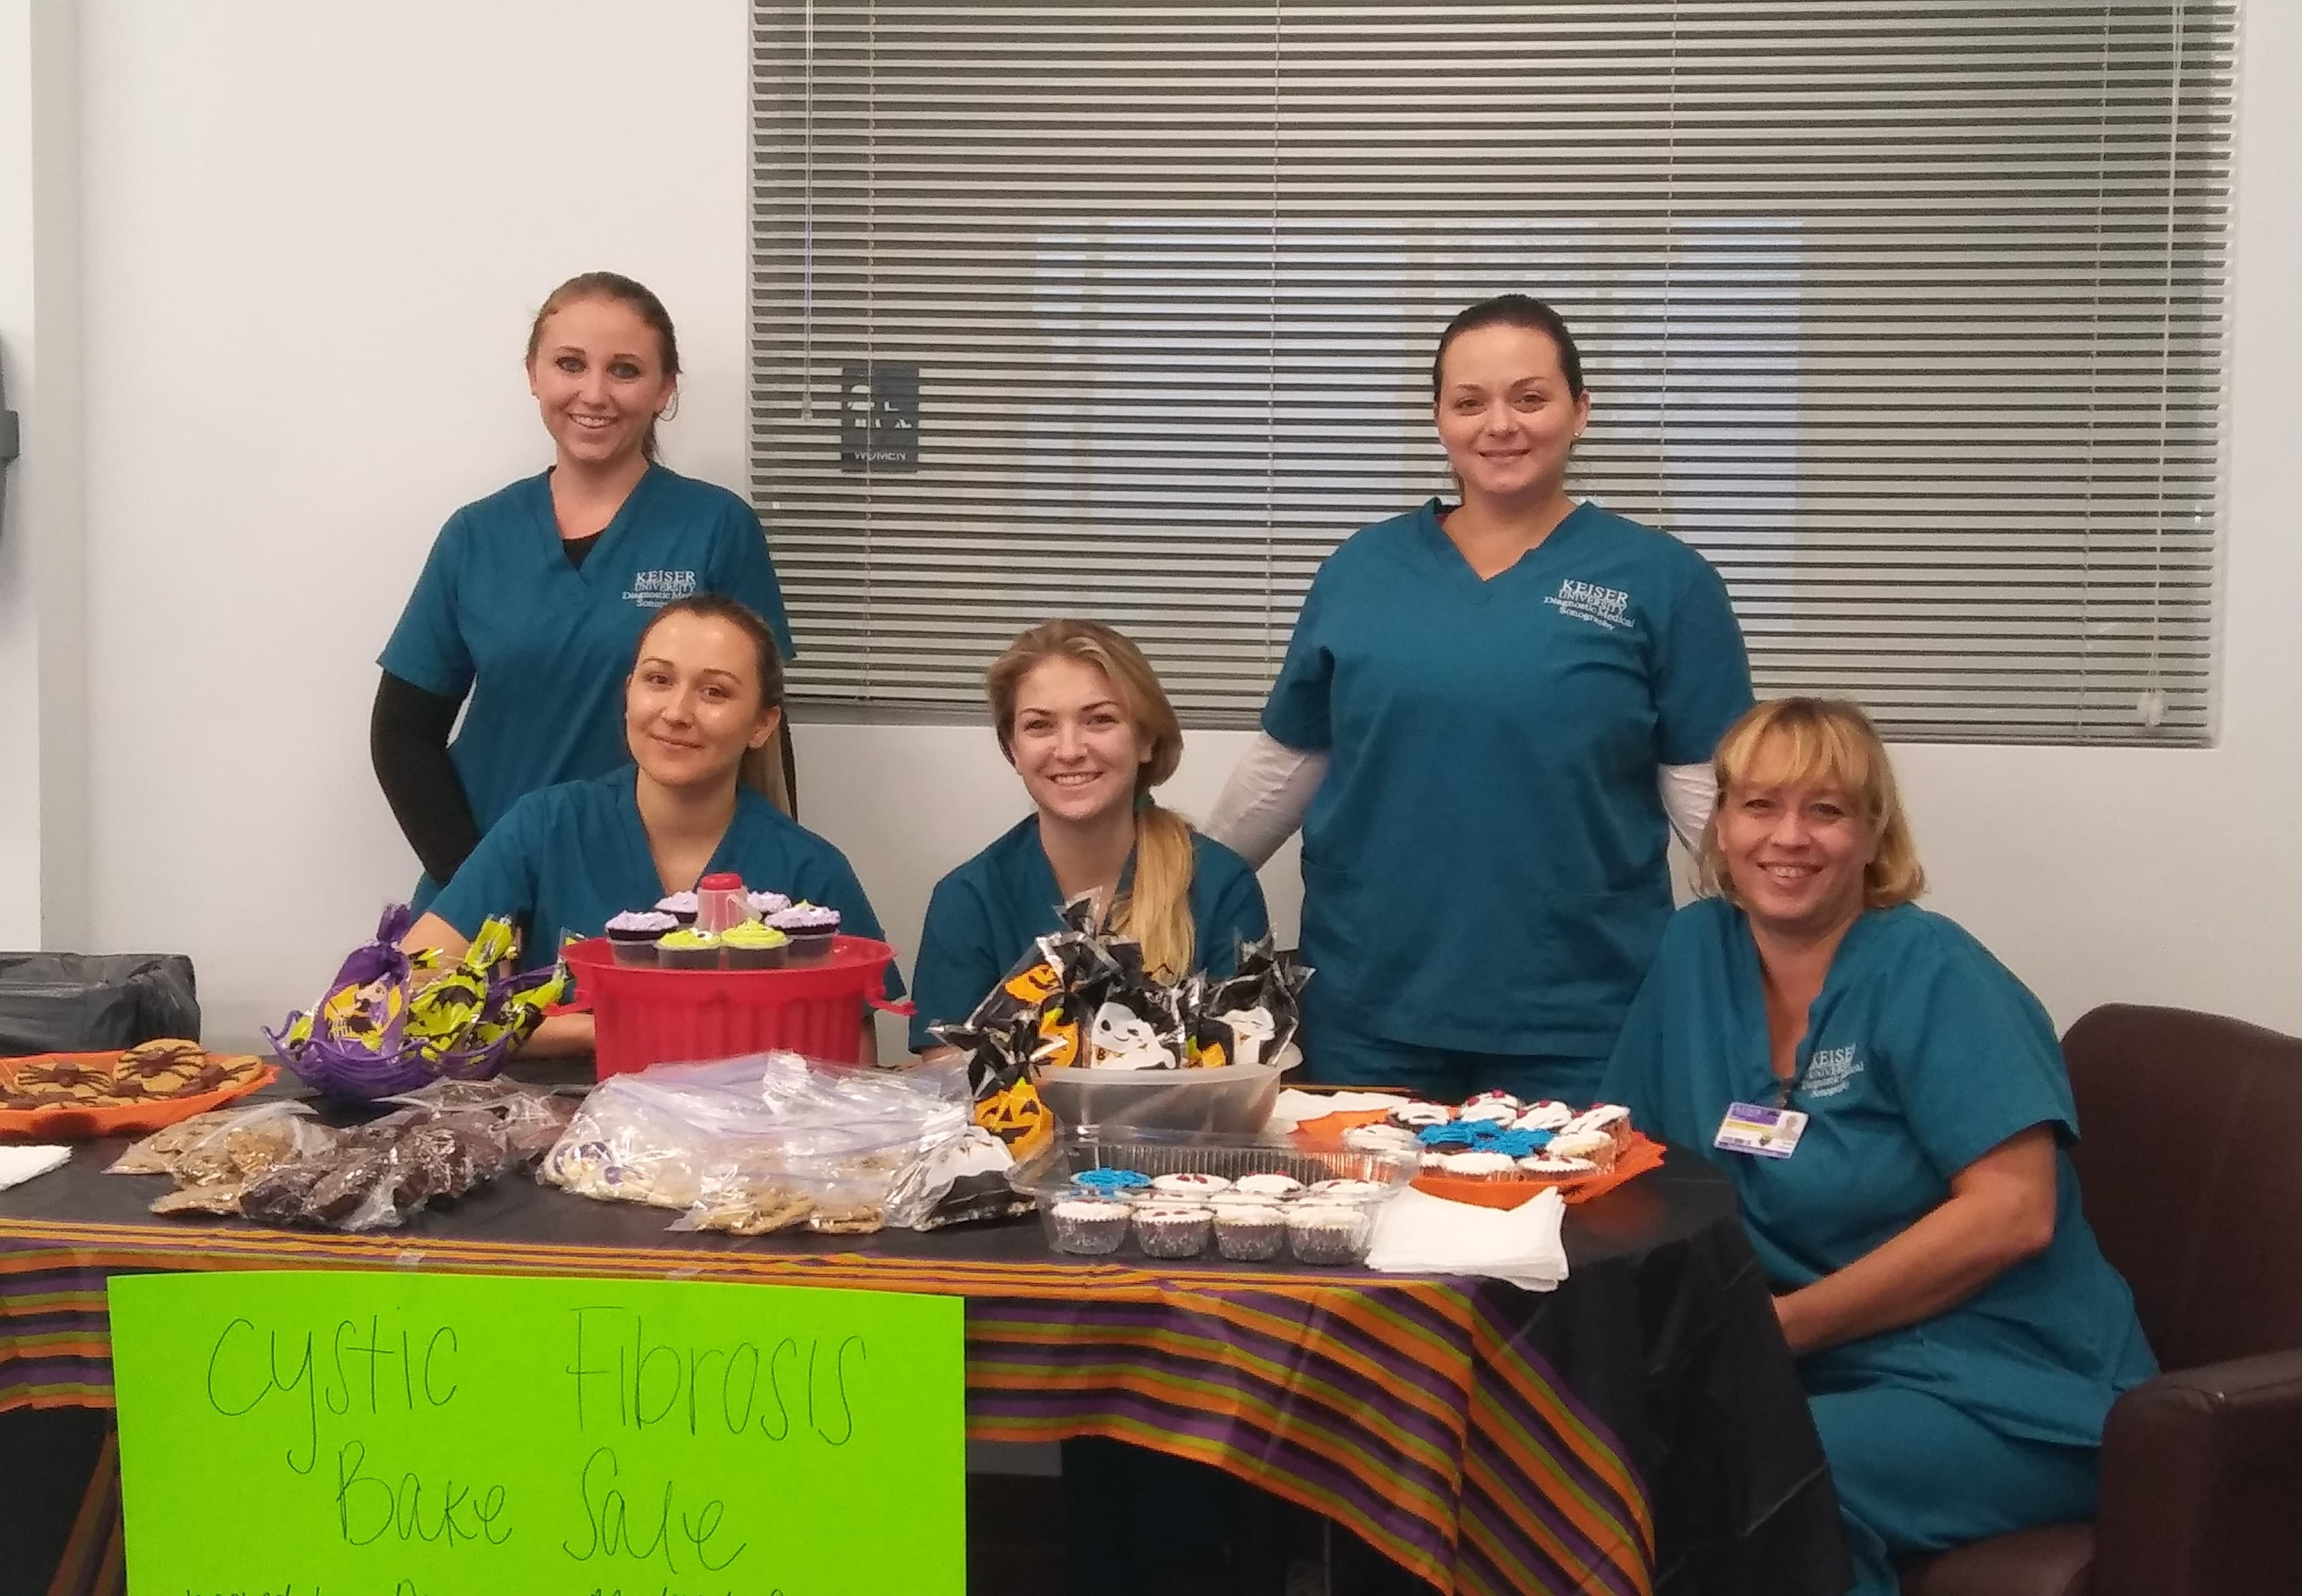 Melbourne Students Raise Money for the Cystic Fibrosis Foundation